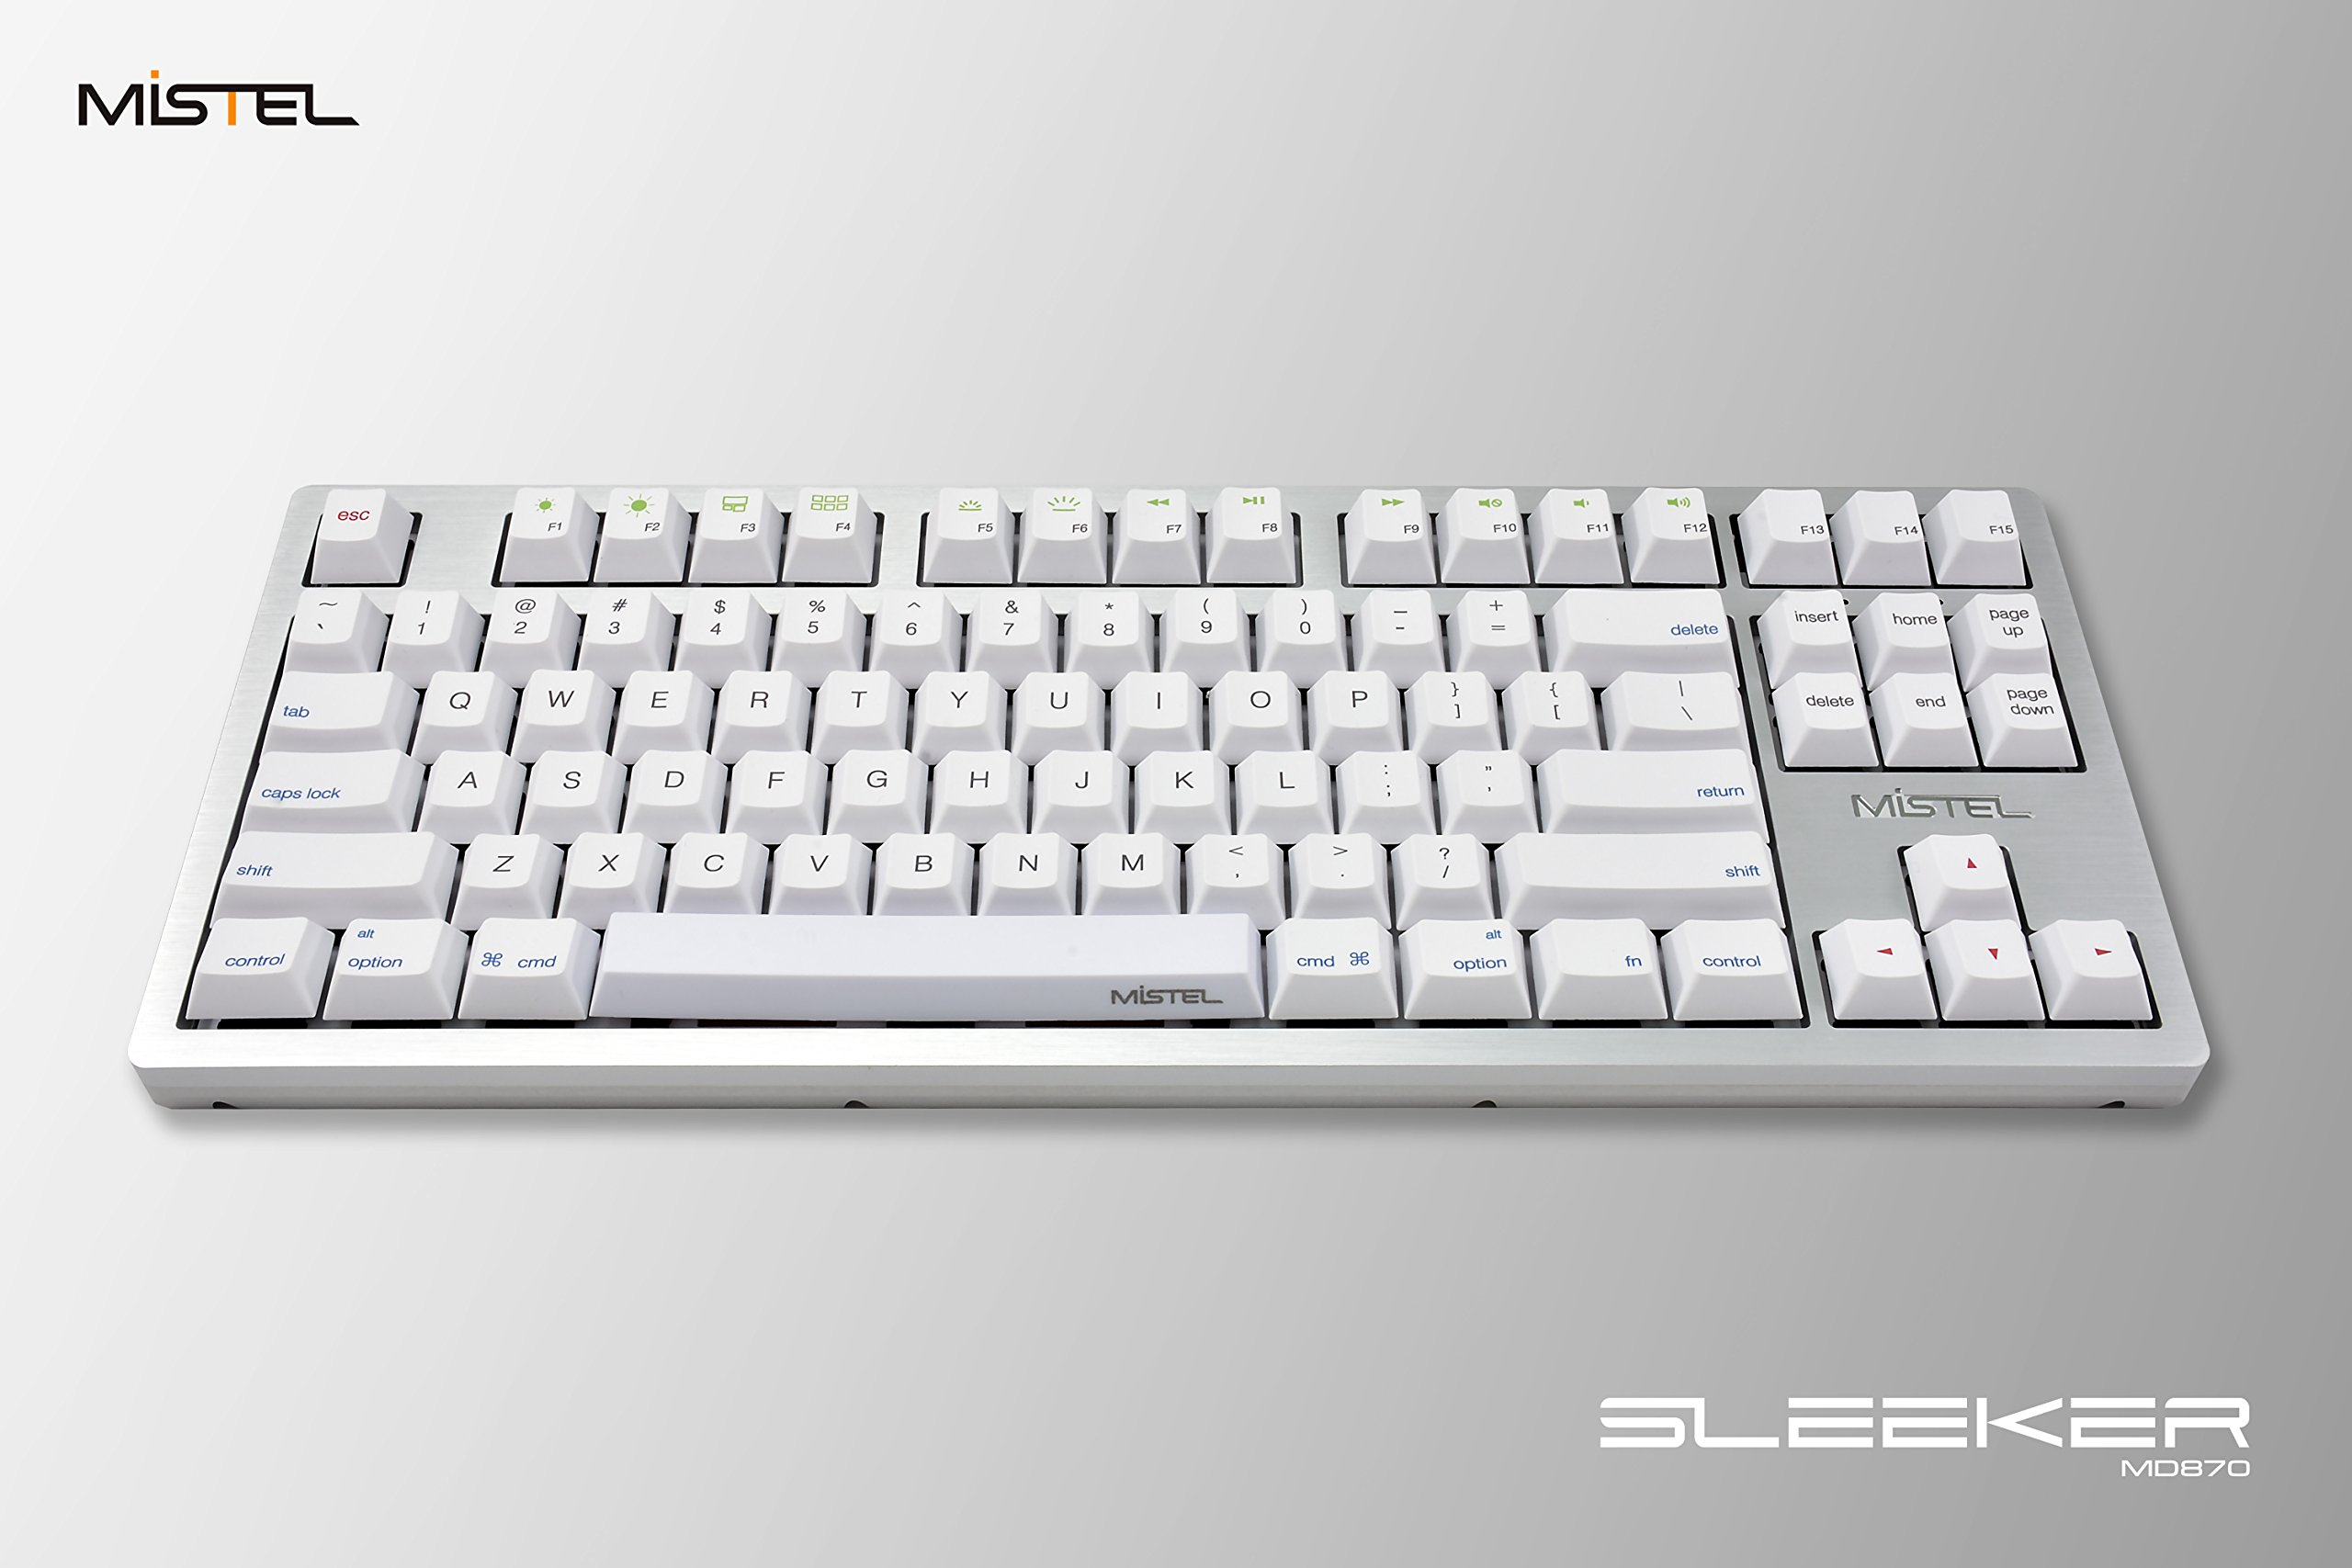 Mistel SLEEKER MD870 Backlit TKL Mechanical Keyboard with Cherry MX Brown Switch and Silver Full CNC Aluminum Case for Mac and Windows (Single White LED, PBT Dye-Sub Keycap, Macro Support, ANSI/US)